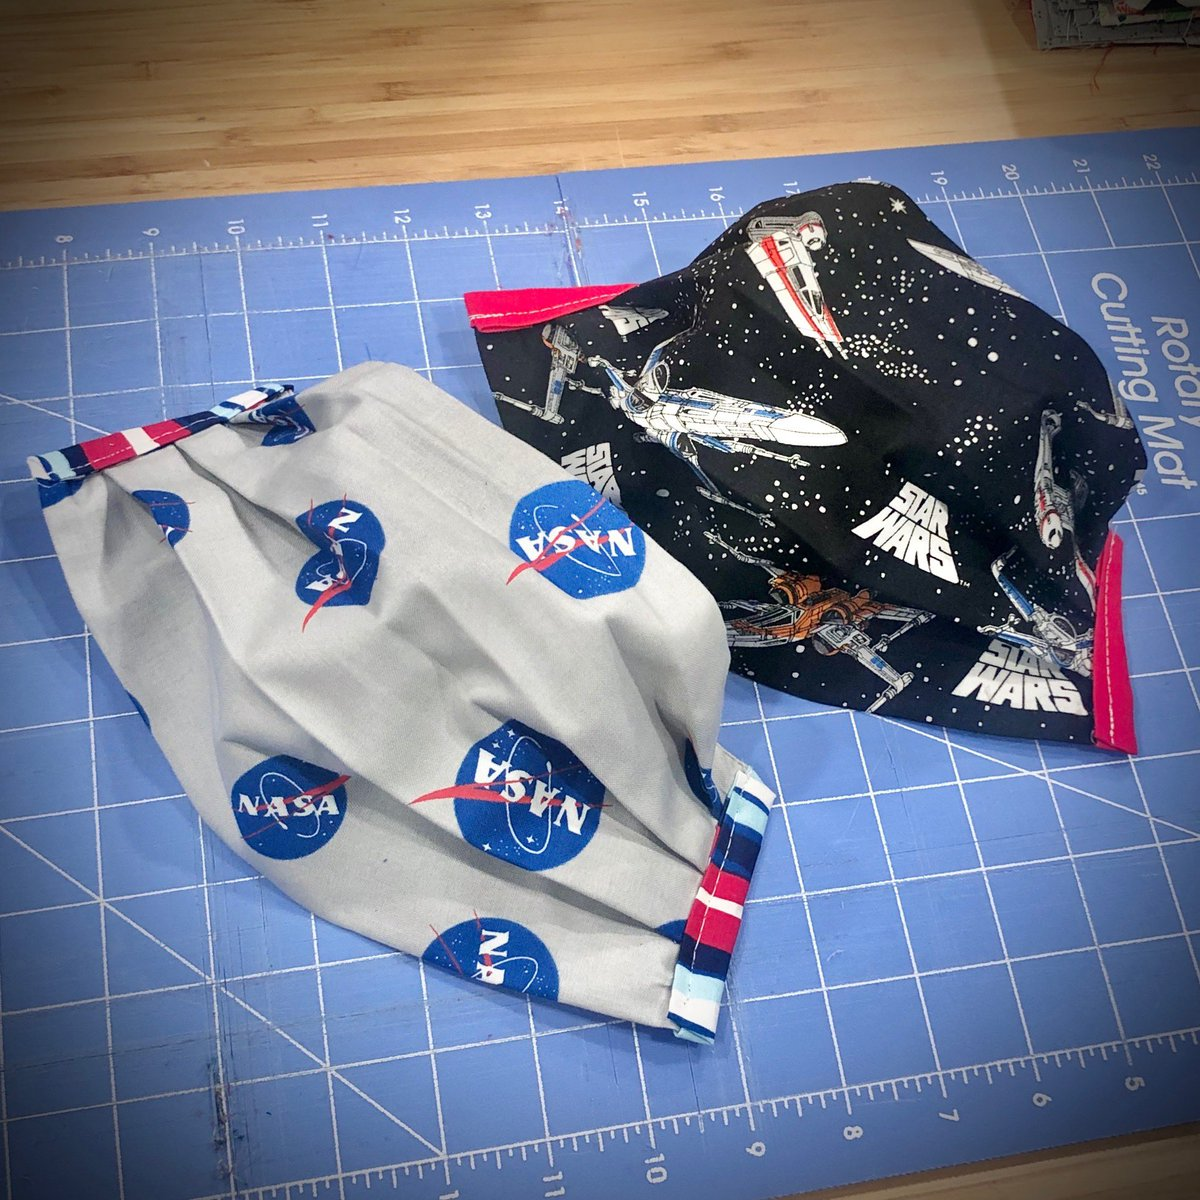 We have lift off! Our new #StarWars fabric arrived the same week America is back in space. 💫 🚀🔥 🌎   #LiveVaccarously #masks #nasa #wehaveliftoff #toinfinityandbeyond #spacex #launchamerica #lukeiamyourfather #maytheforcebewithyou https://t.co/pJhPj1Jgzi